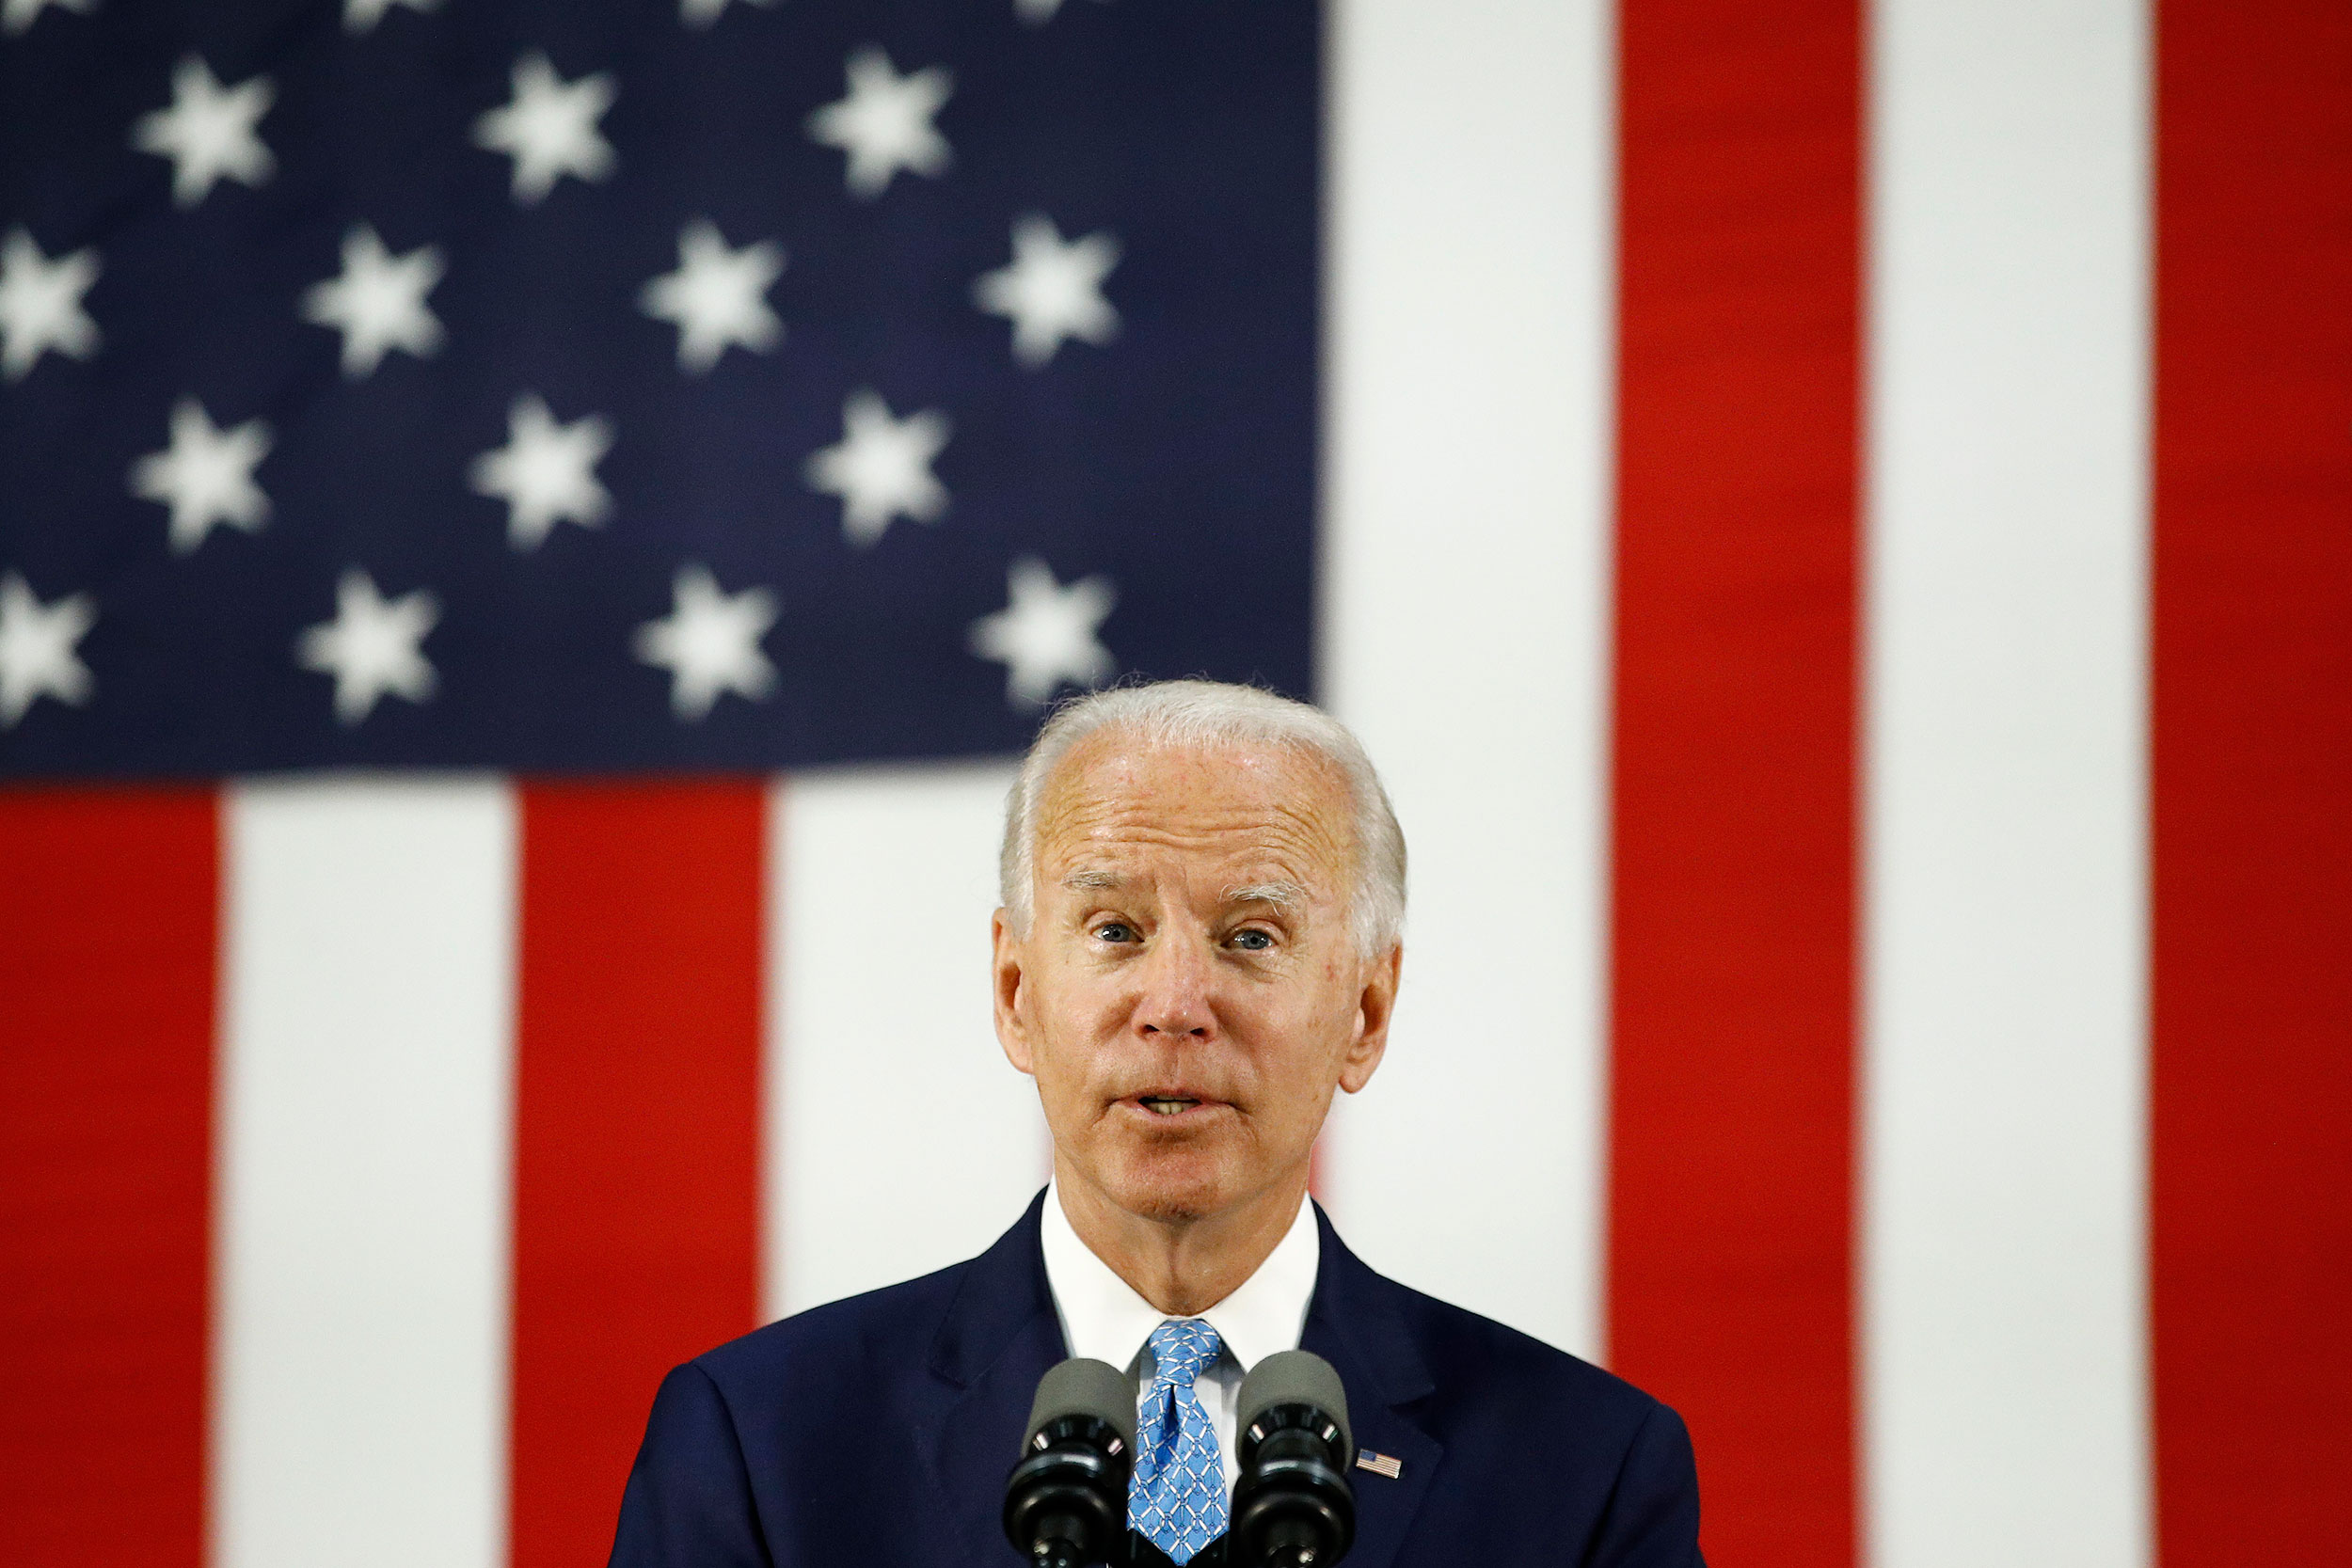 Biden seeks to clarify comment that Latino community is diverse, 'unlike the African American community'